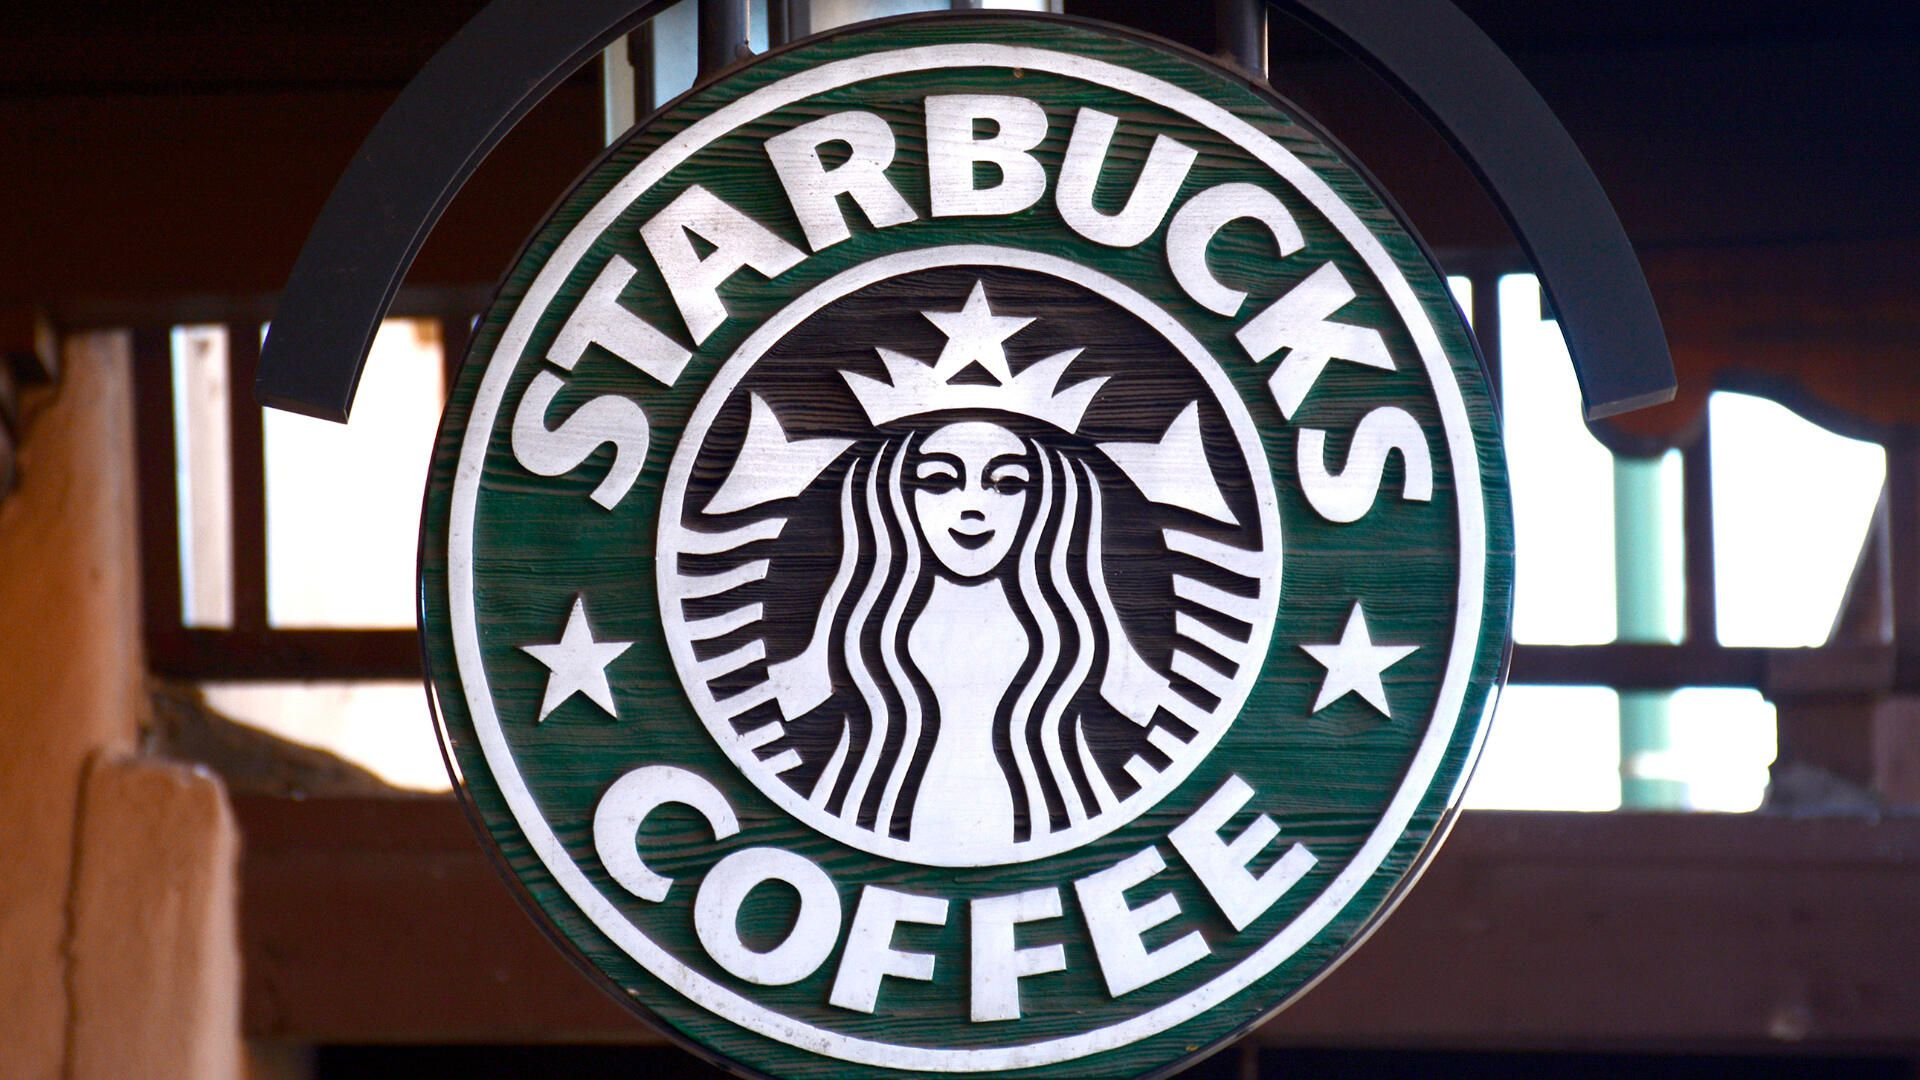 The US government is considering boosting it's development of 5G: Starbucks starting to boycott ads on social networks.